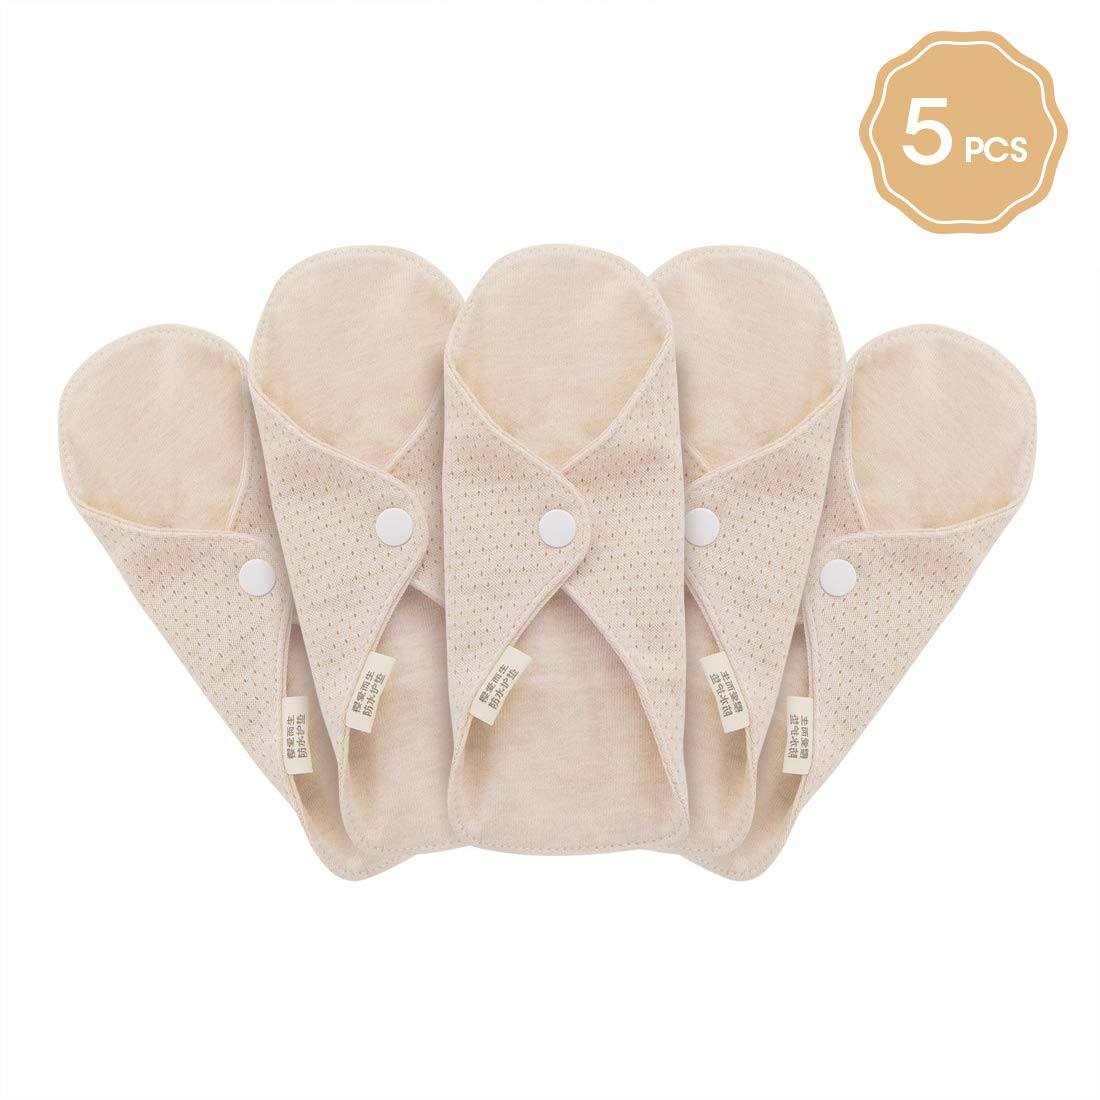 Women Organic Cotton Sanitary Napkin Washable Panty Liners Leak Proof Design Suit for All Women MQUPIN Reusable Sanitary Towels Pads